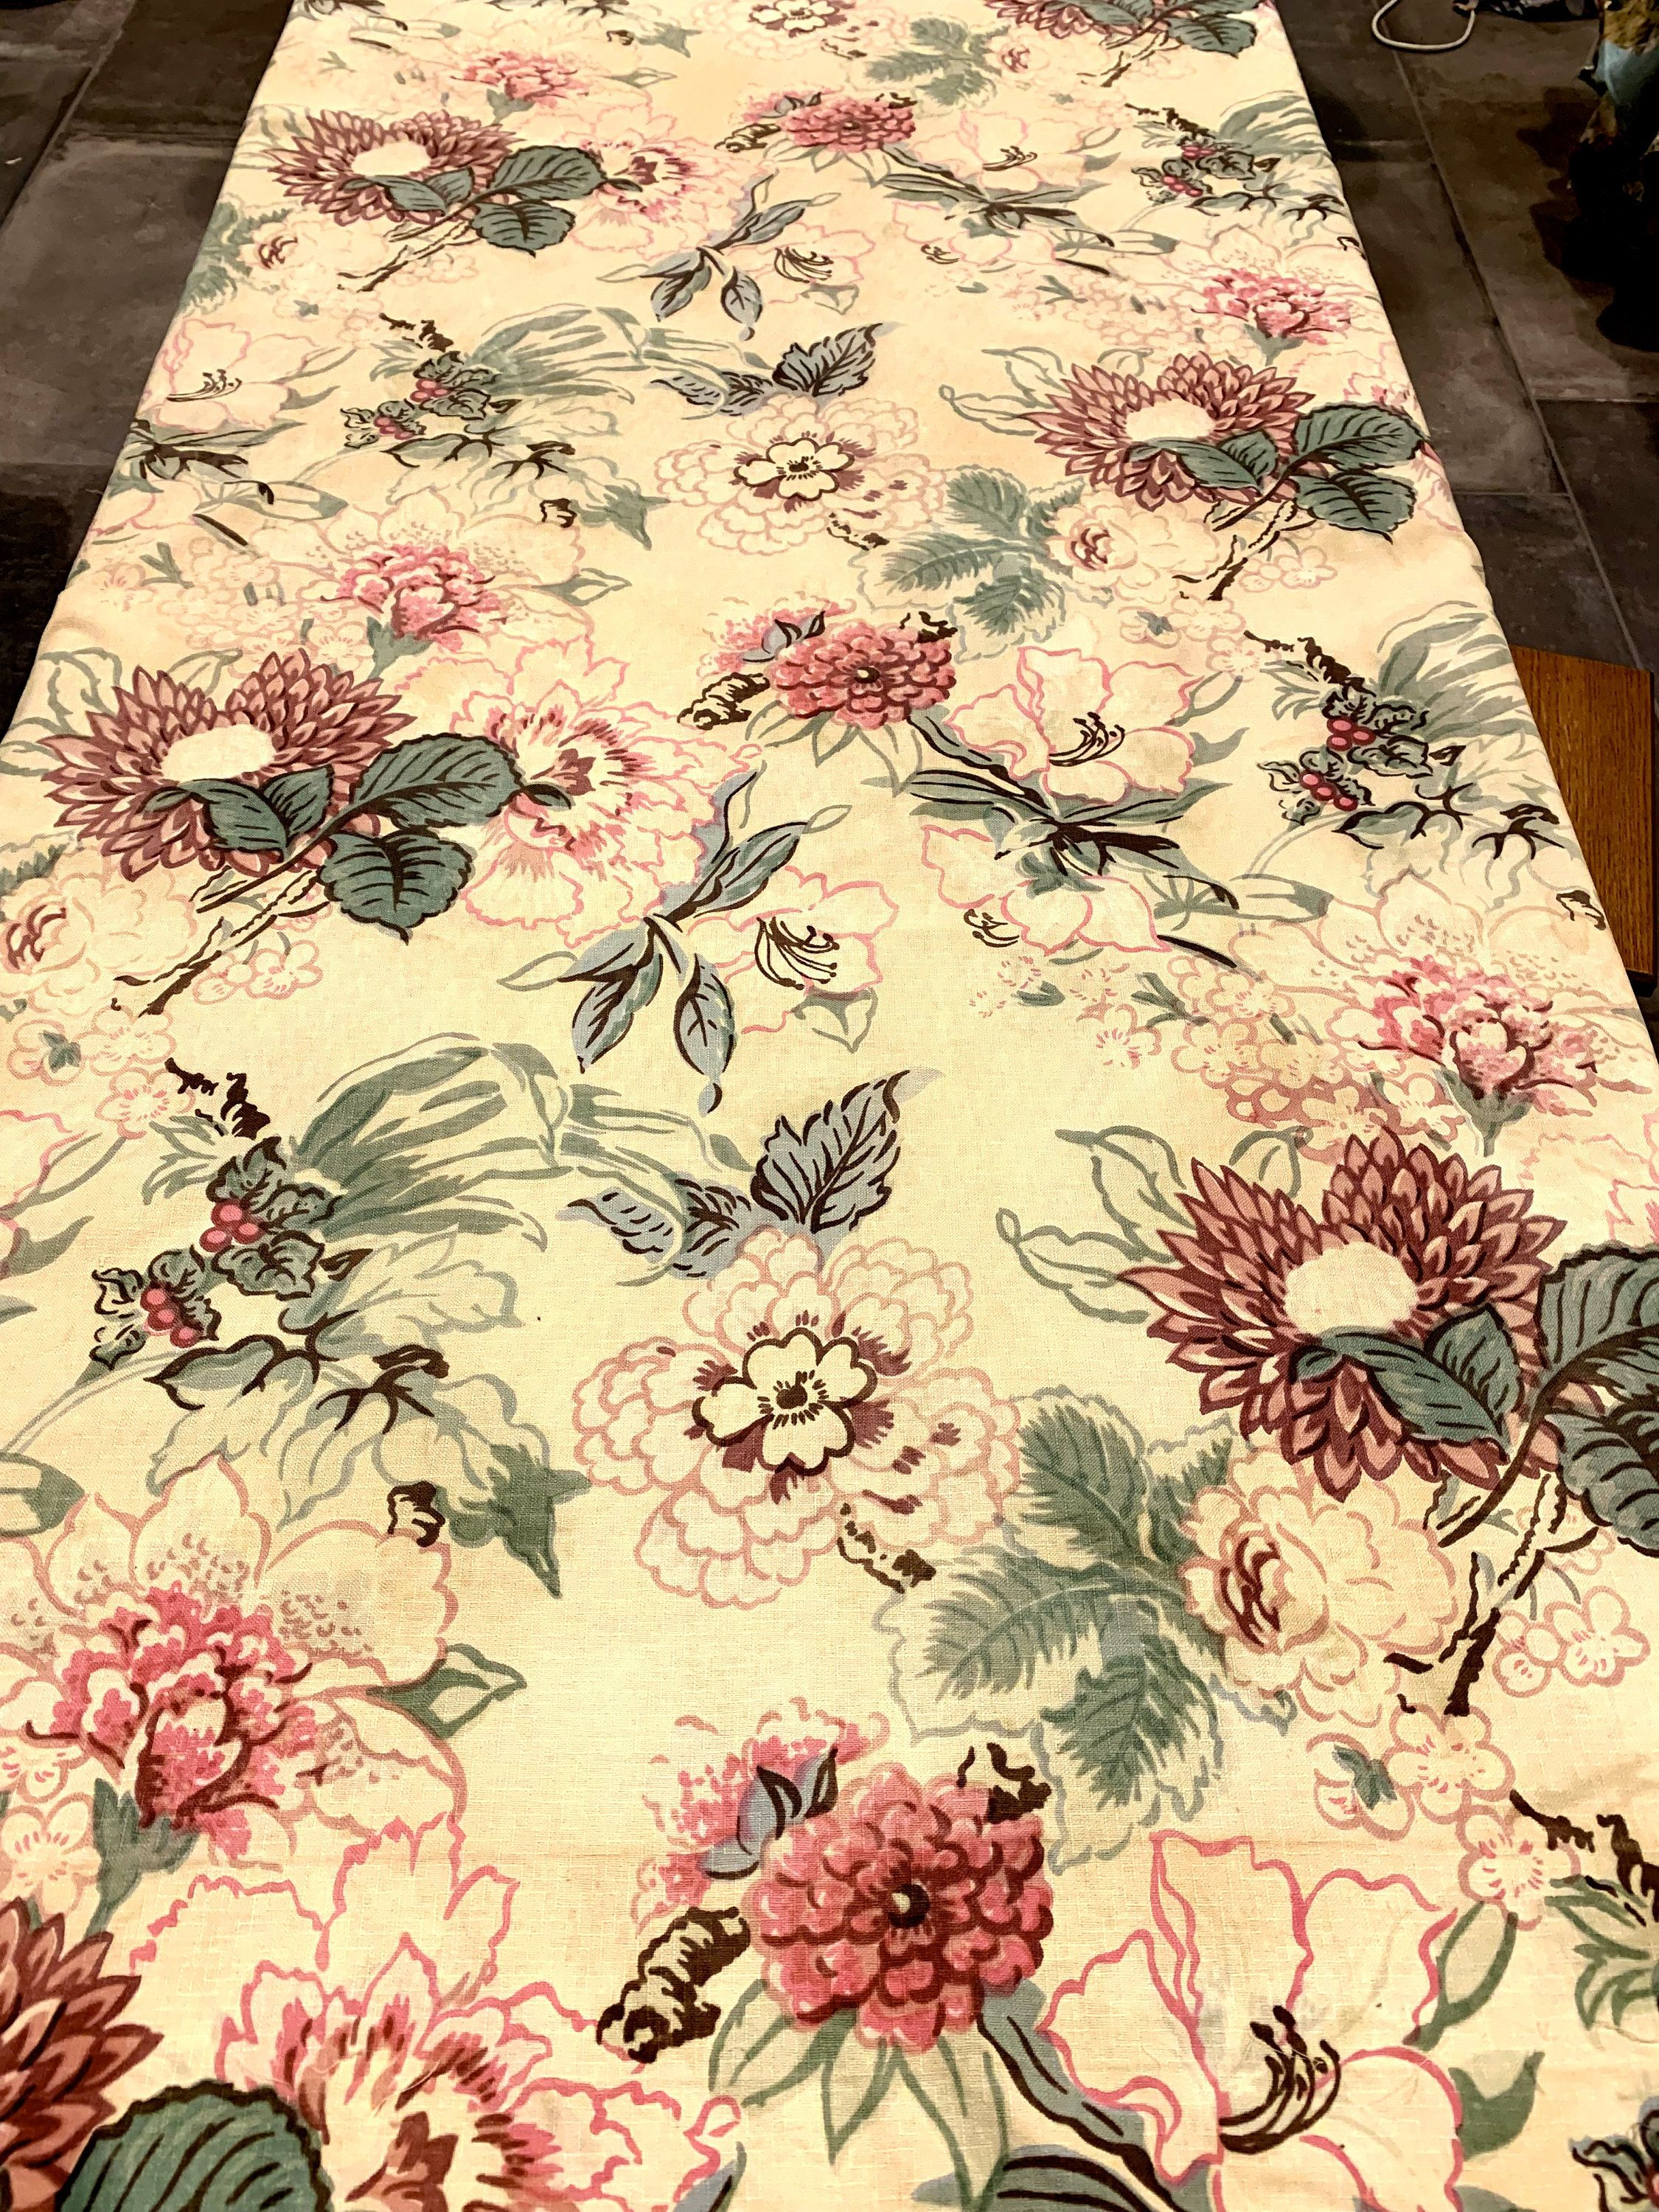 Pin On 30s And 40s Floral Textiles